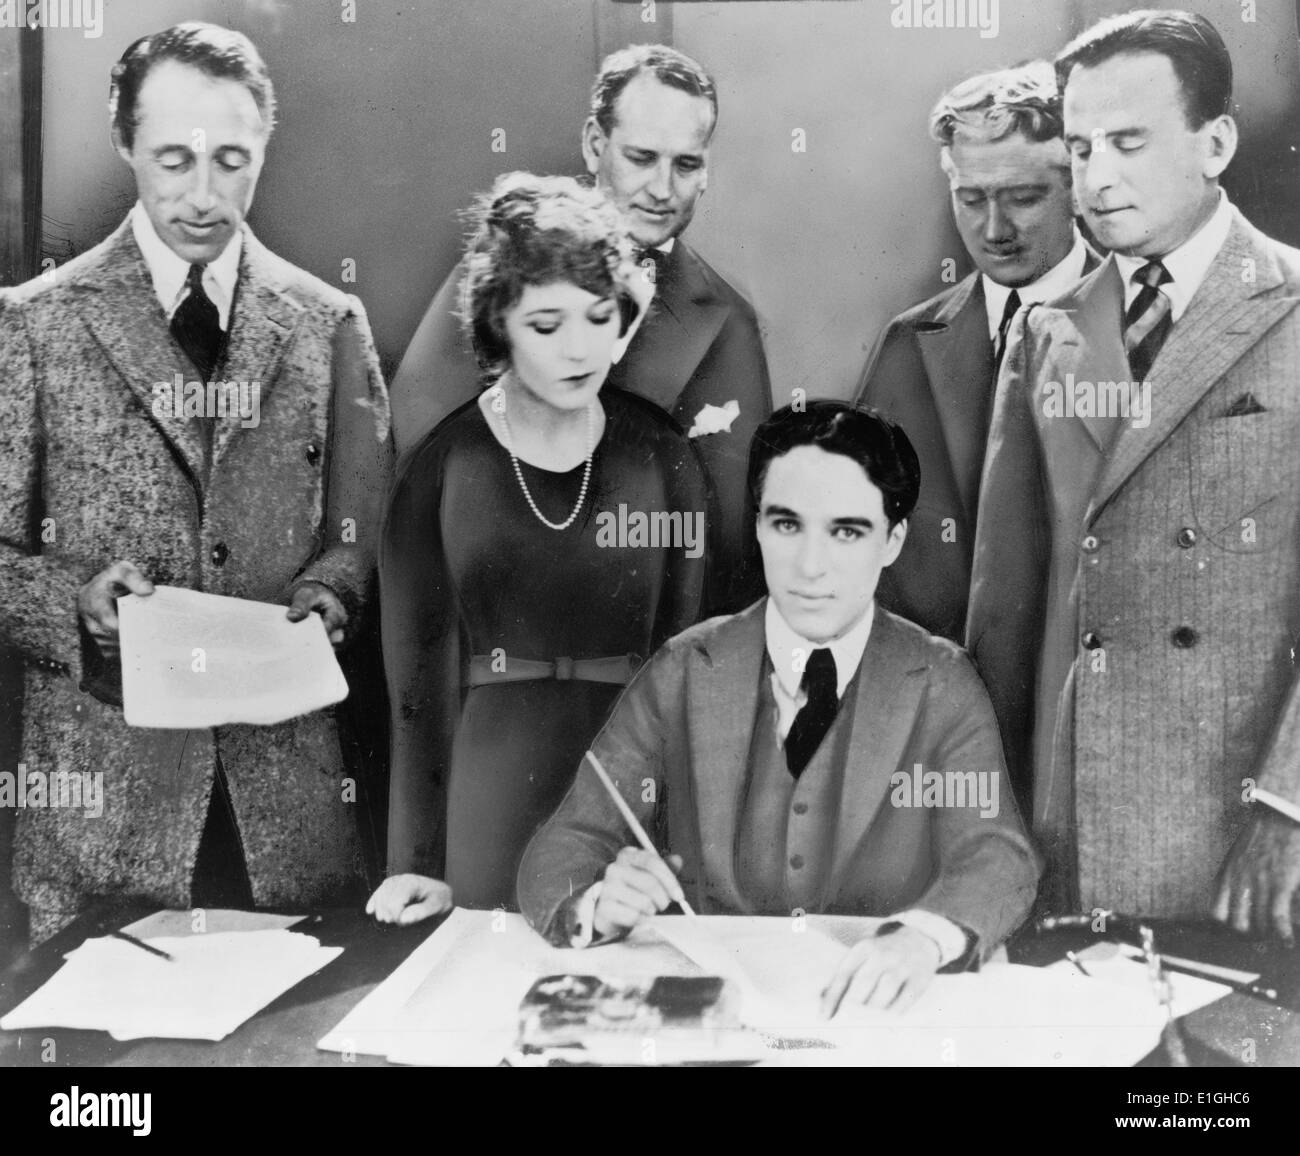 DW Griffith, Mary Pickford, Charlie Chaplin, Douglas Fairbanks signing contract establishing United Artists motion picture - Stock Image